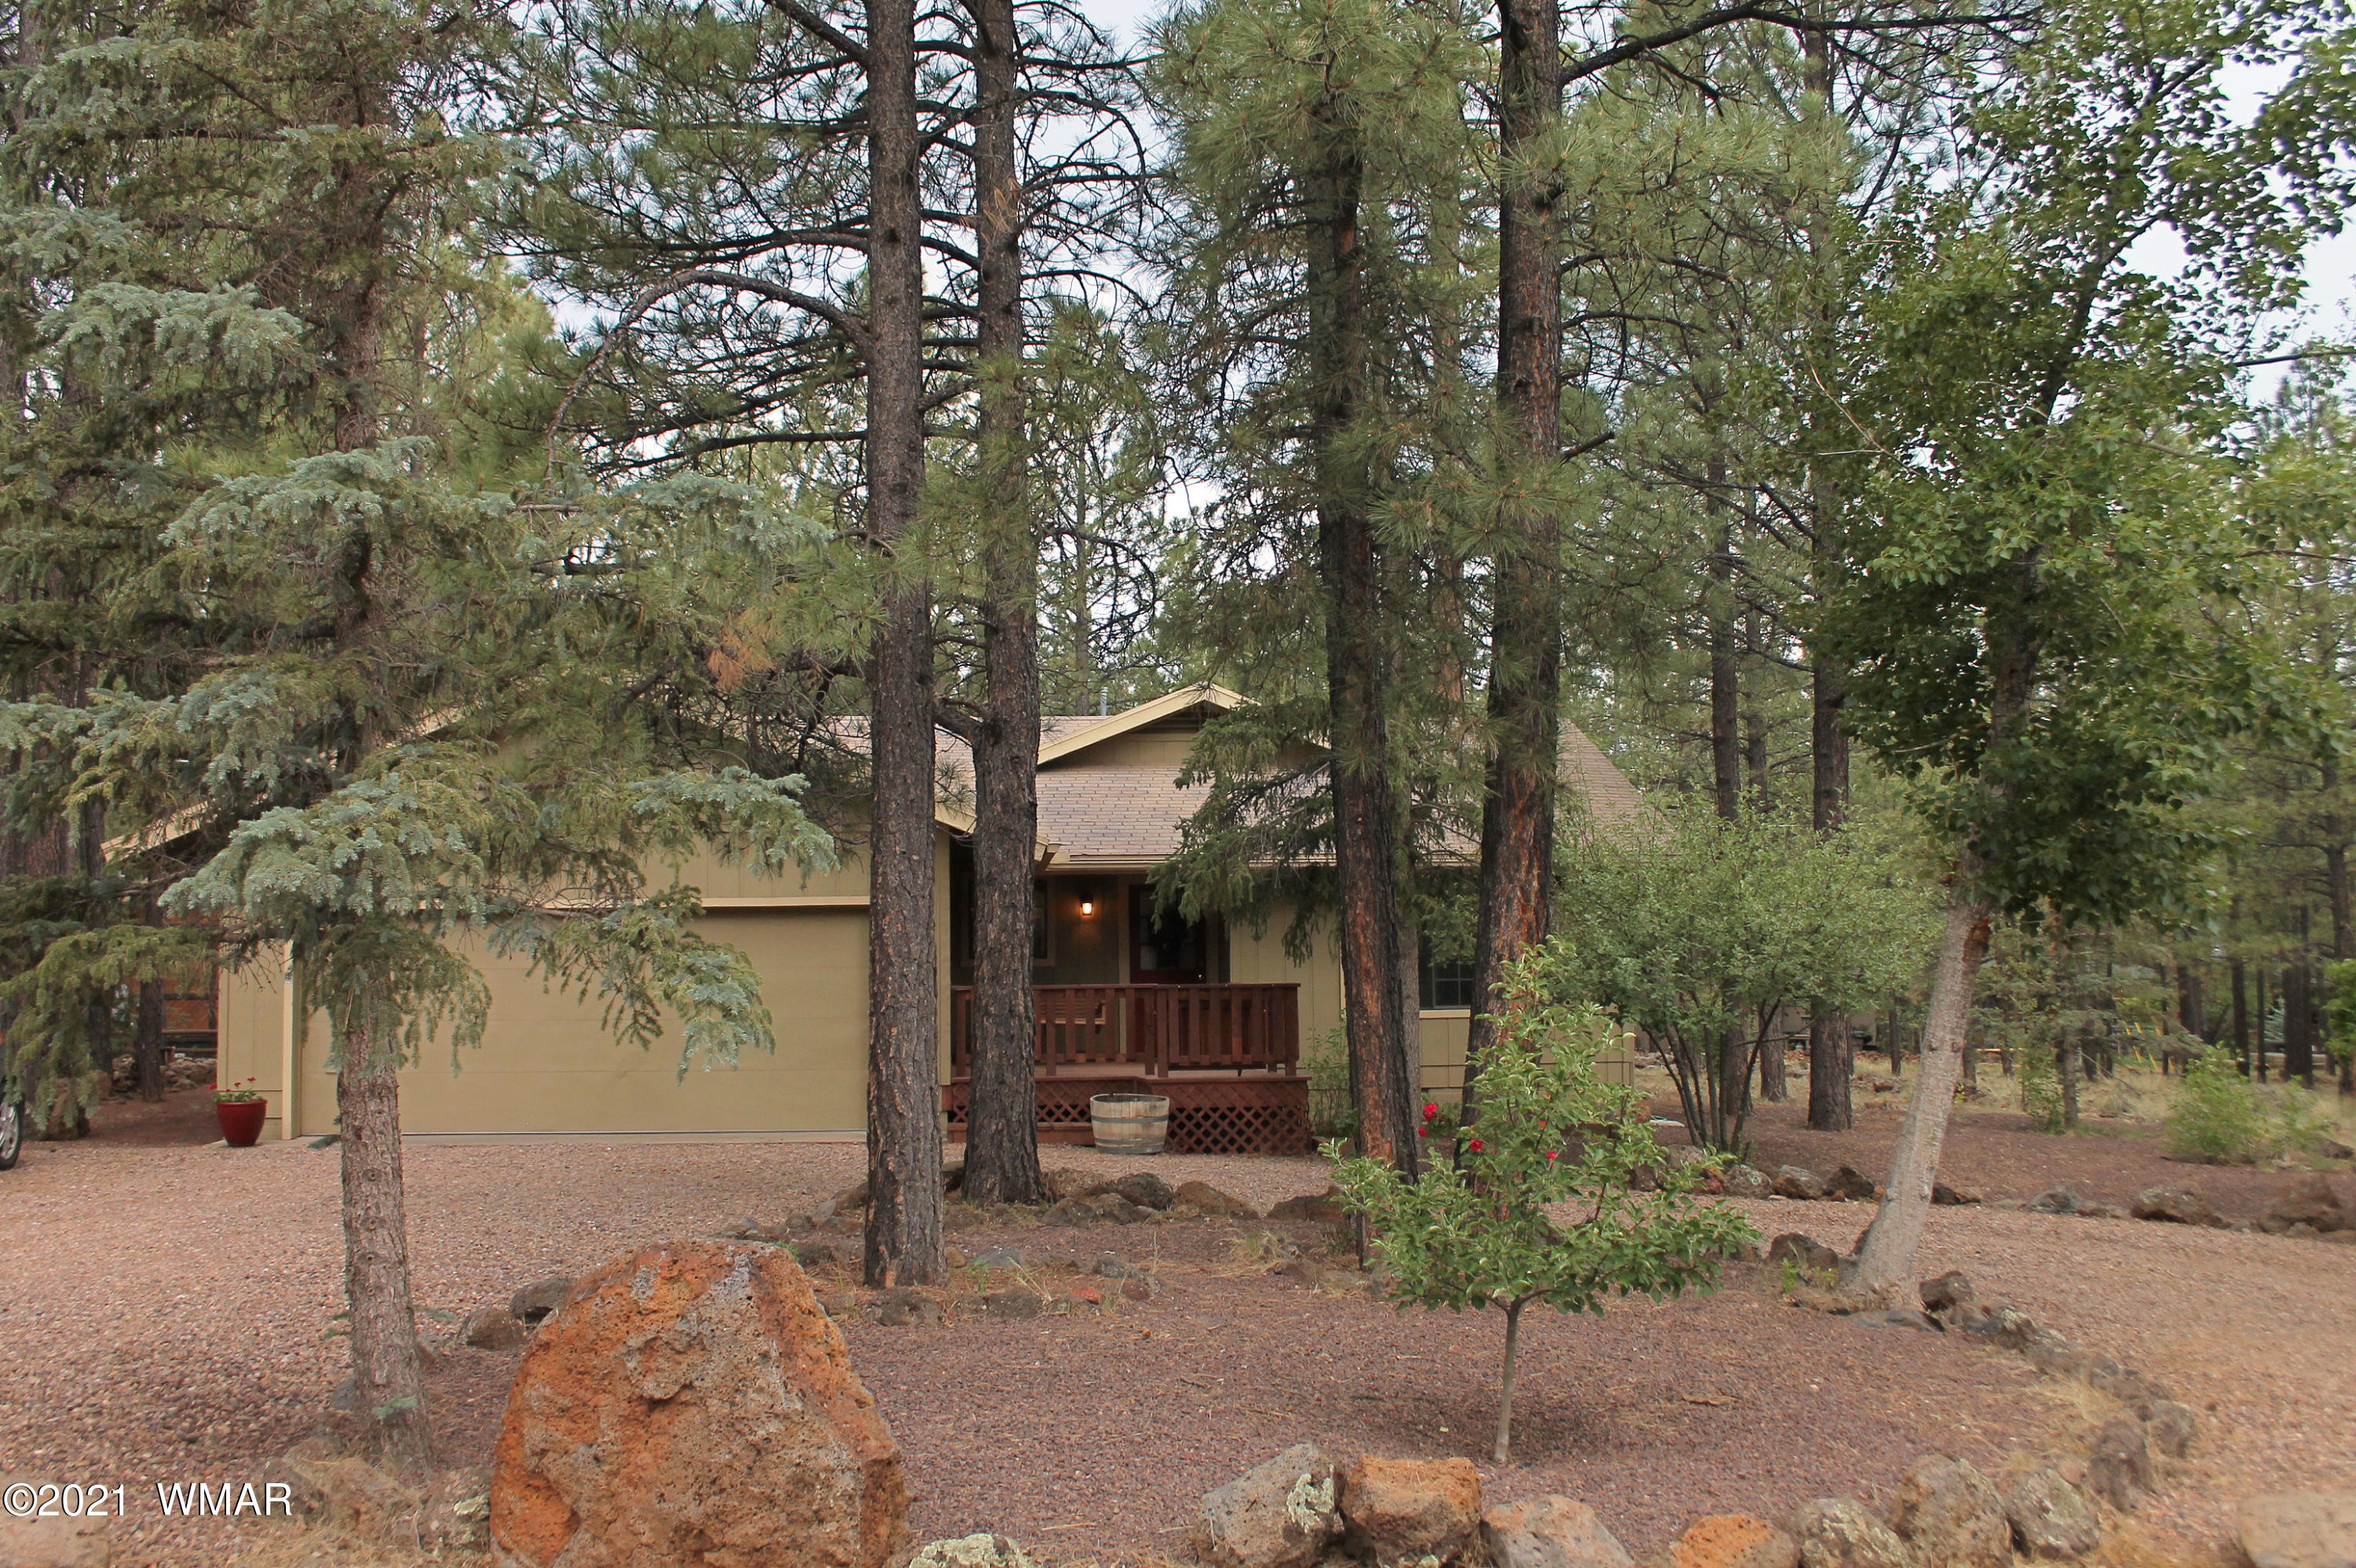 3 bedroom, 2 bath, 2 car attached garage, single story home in Pinetop Lakes. Rec center privileges. Comes with a large covered back deck, tall pines, heavily treed, landscaped,  lot is .32 of an acre. Sits on the lot to take advantage of the suns path so as to be cool during the summer. Super low traffic flow on the street, circular drive, fruit trees. Home has vaulted ceiling in living room and master bedroom.  Comes with a family room, furniture included with an acceptable offer. Place is in great shape and ready to move into. Property is close to National Forest. Take advantage of all the amenities available through the HOA. Close to all fishing, hiking, biking, hunting, camping as well as all the other activities The White Mountains are known for.